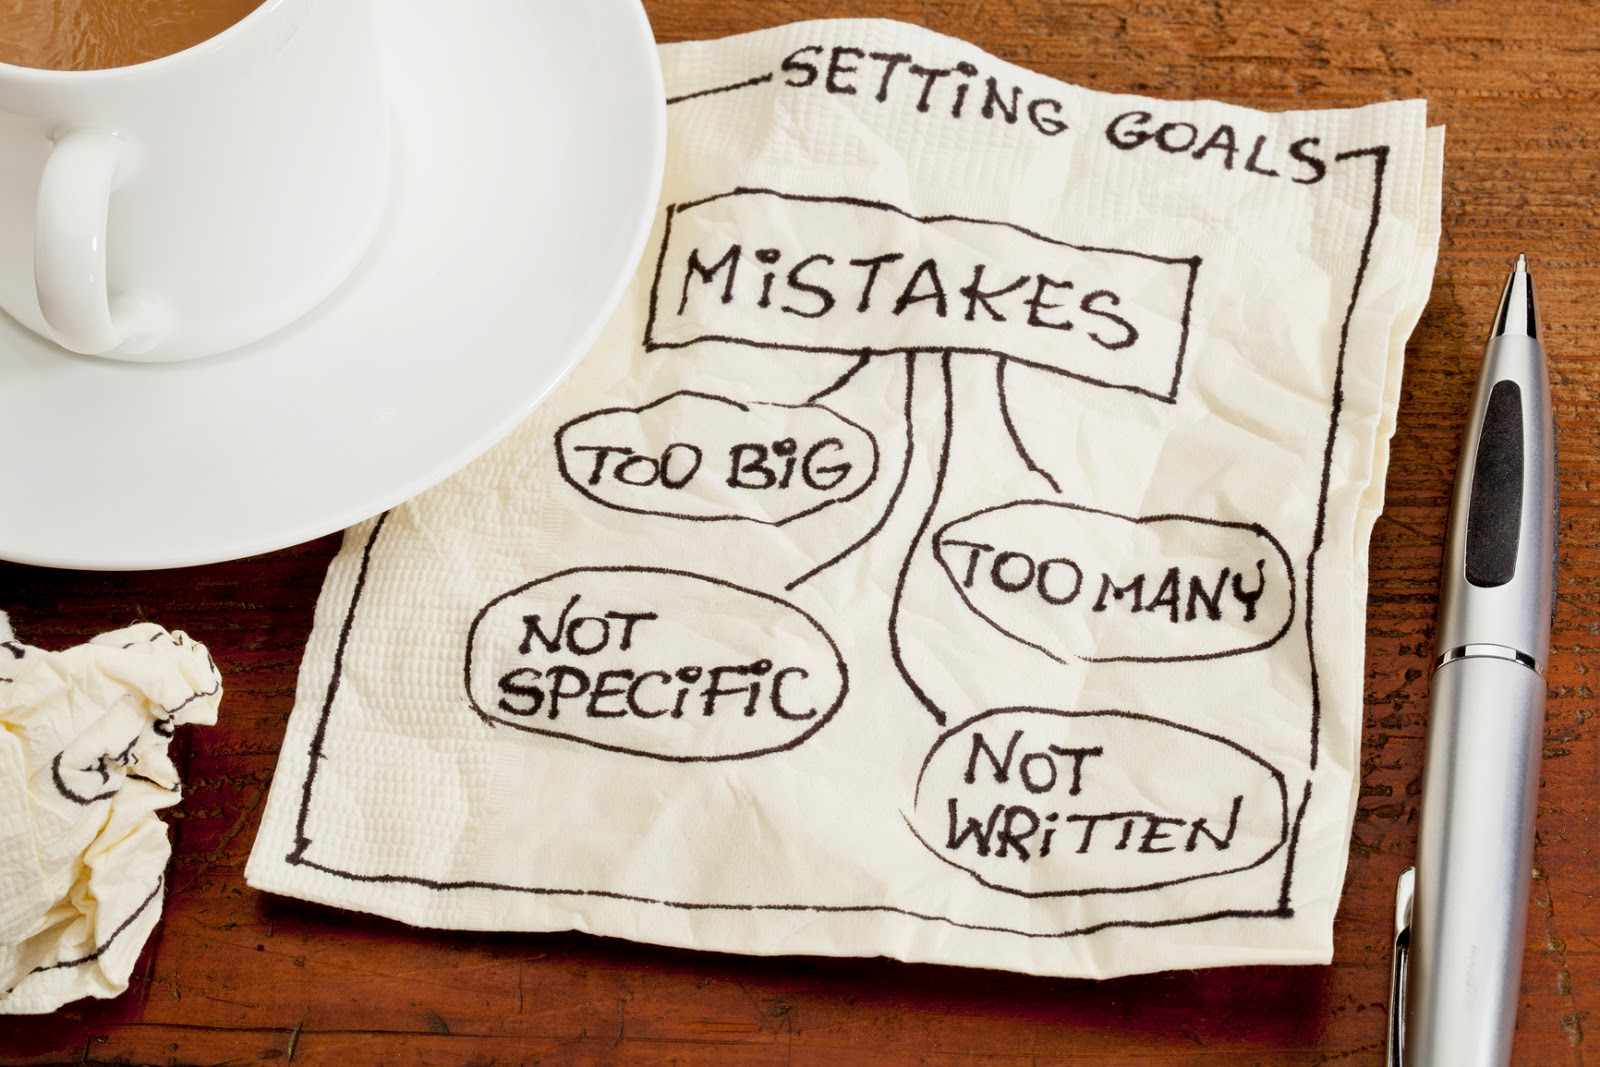 Mistakes in Alkalizing Goal Setting